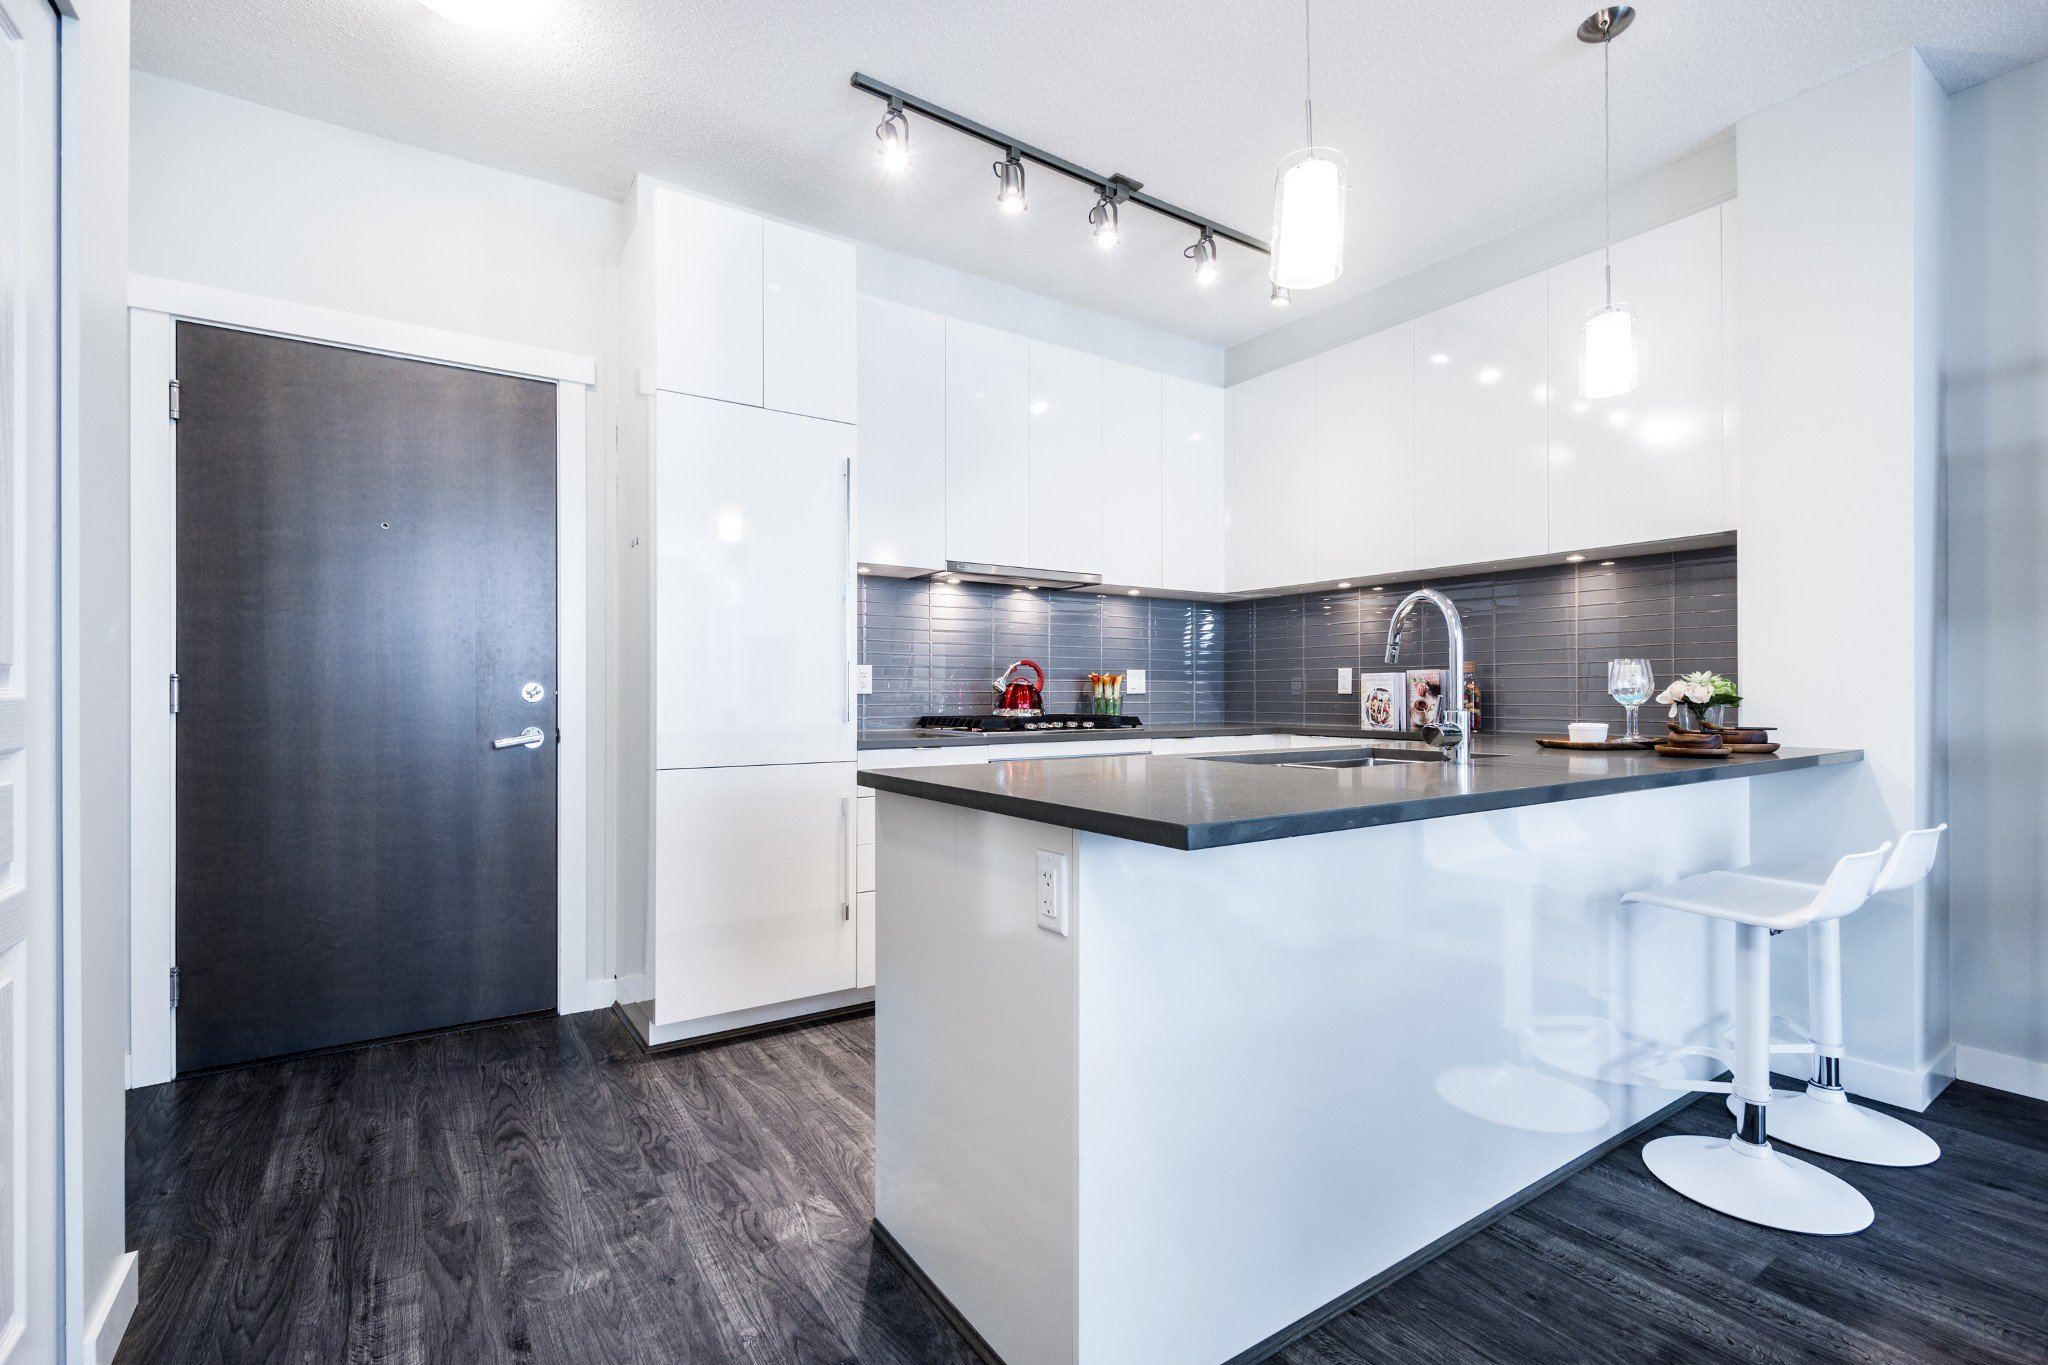 """Photo 10: Photos: 402 9311 ALEXANDRA Road in Richmond: West Cambie Condo for sale in """"ALEXANDRA COURT"""" : MLS®# R2266613"""